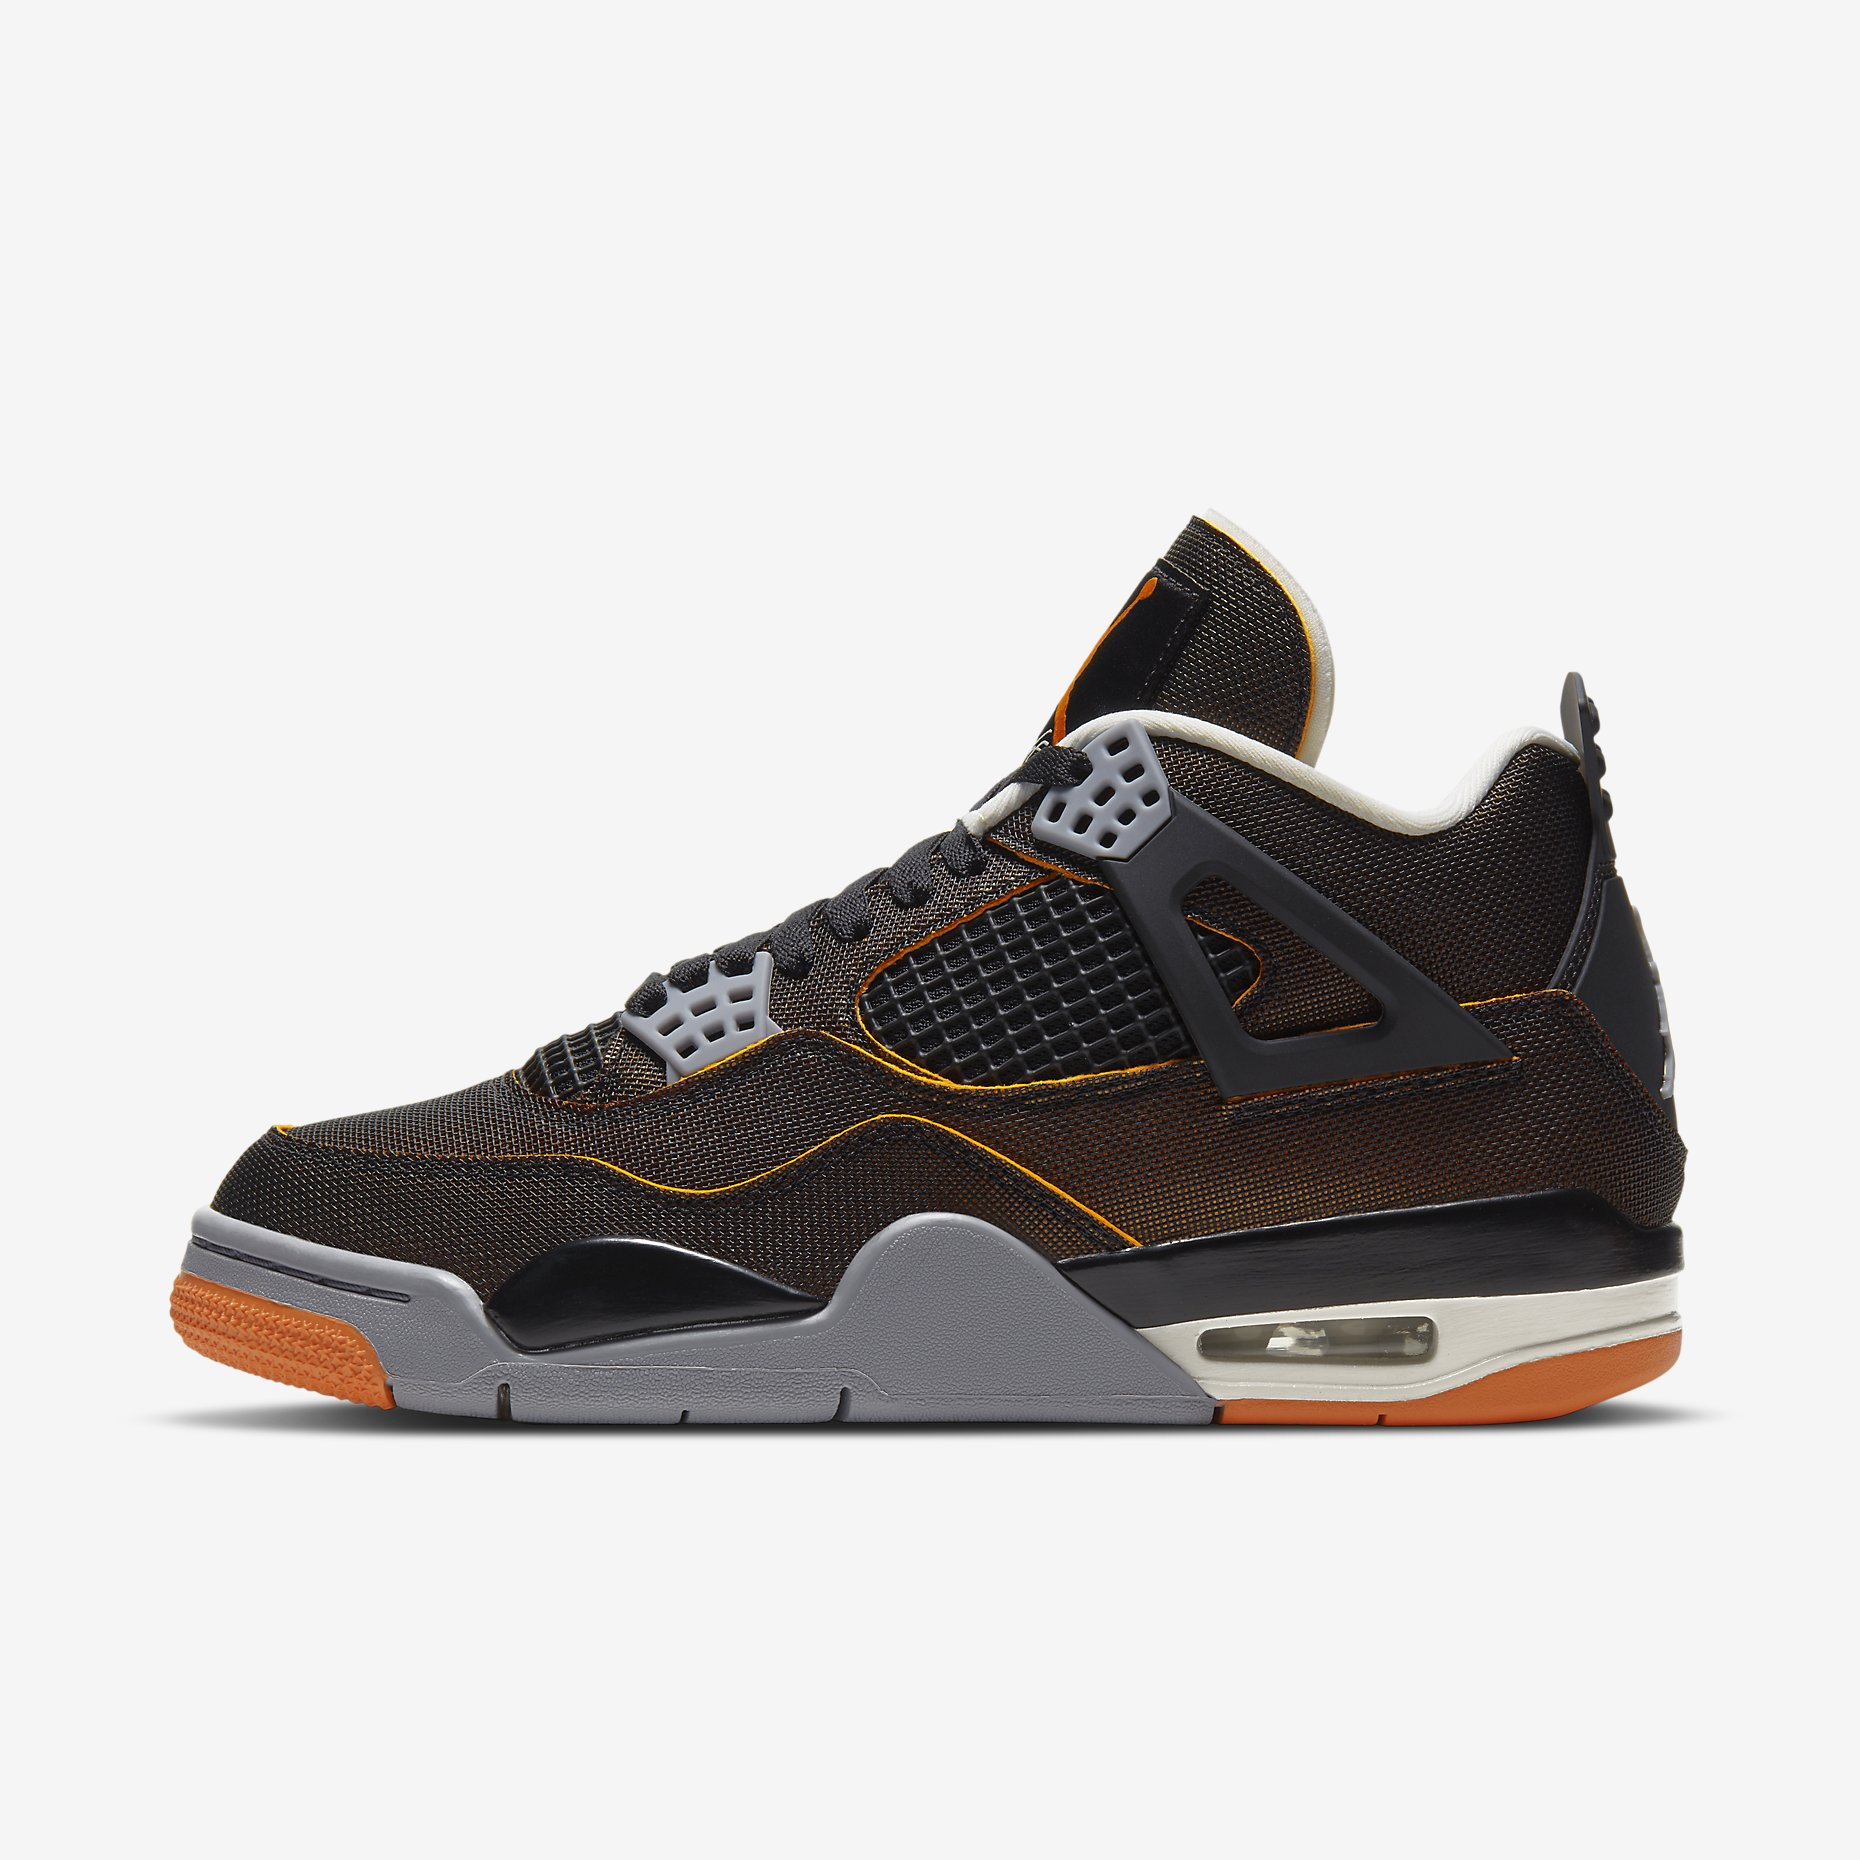 Wmns Air Jordan 4 Retro 'Starfish'}